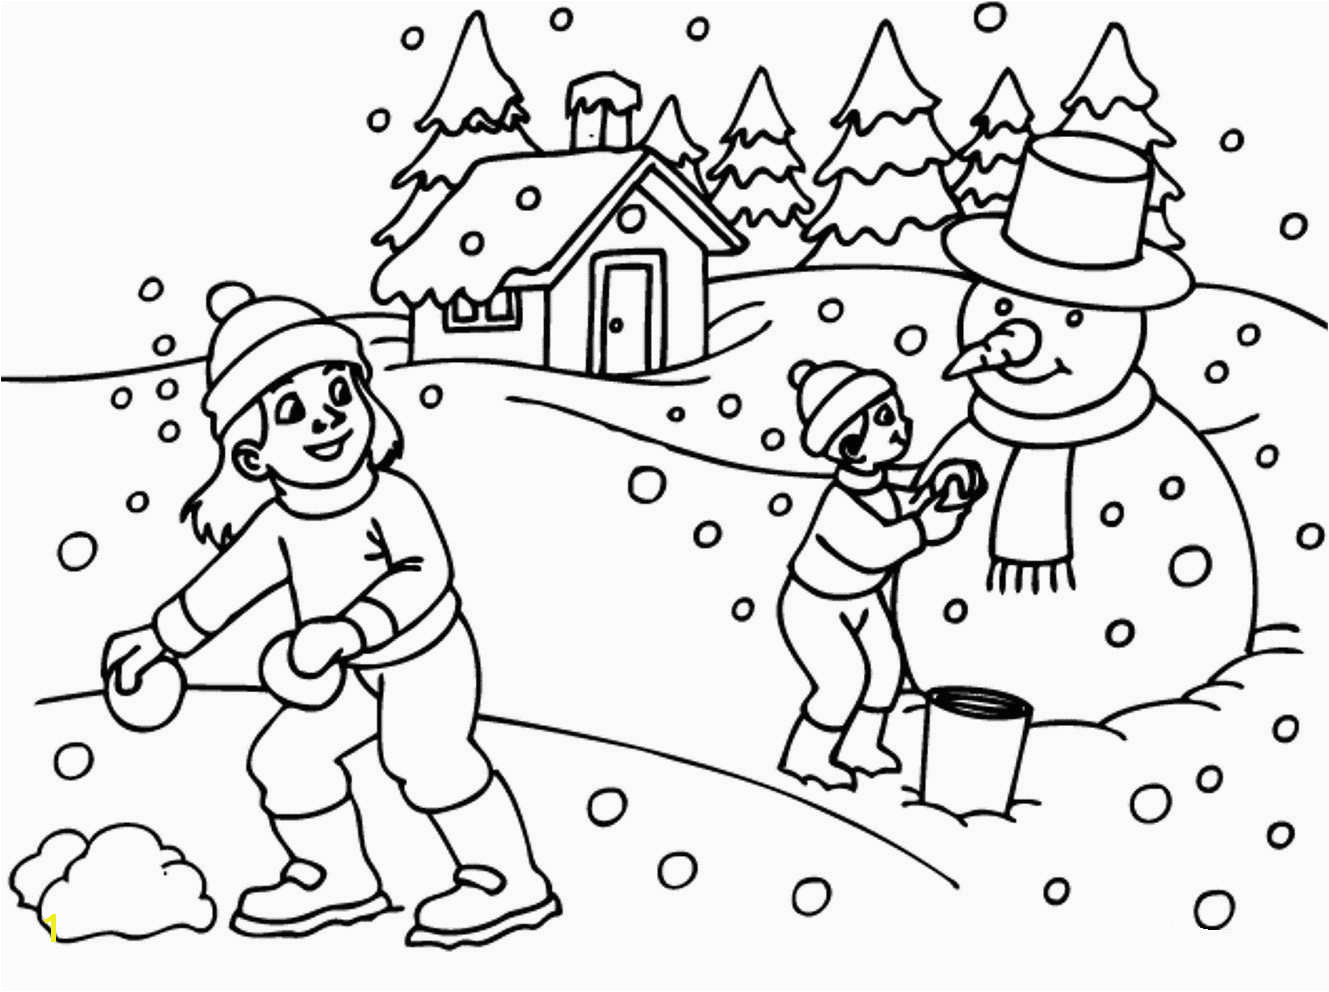 Winter Olympics Coloring Pages Awesome 10 Inspirational Coloring Pages Puzzles Printables Winter Olympics Coloring Pages